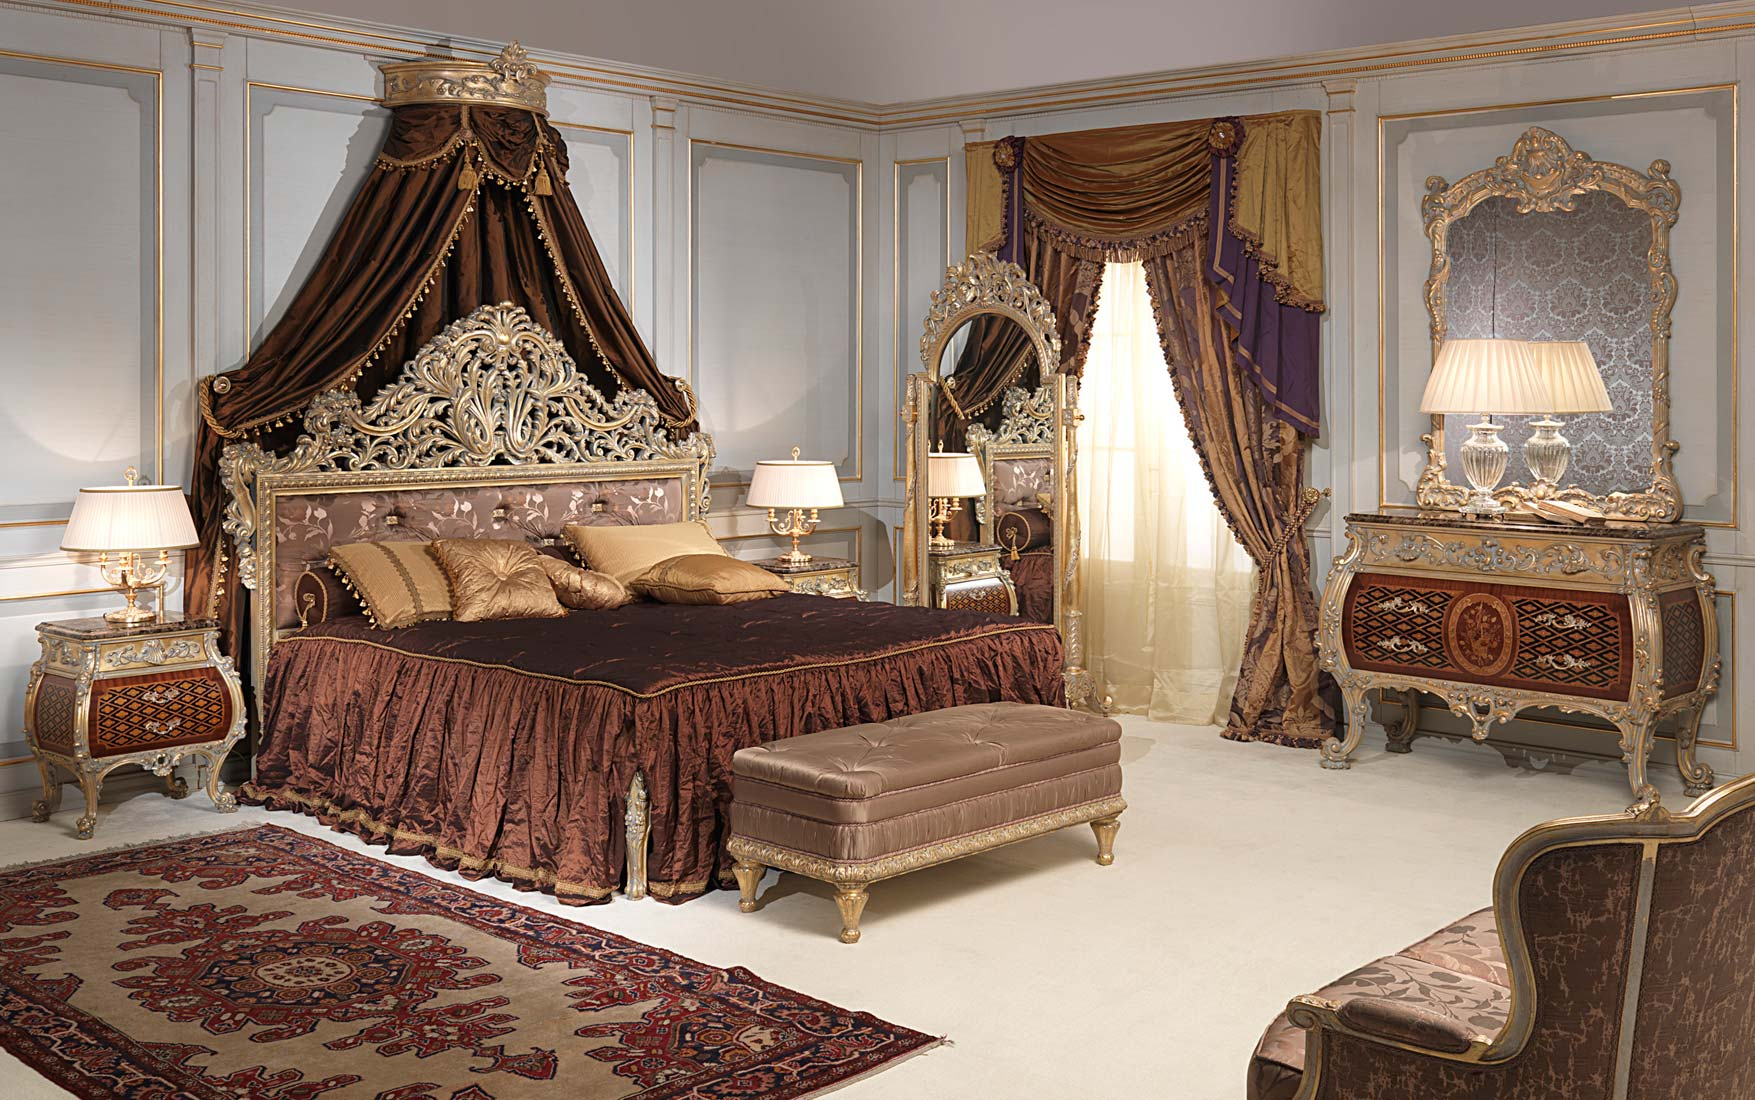 Classic Emperador Gold Bedroom In Louis Xv Style